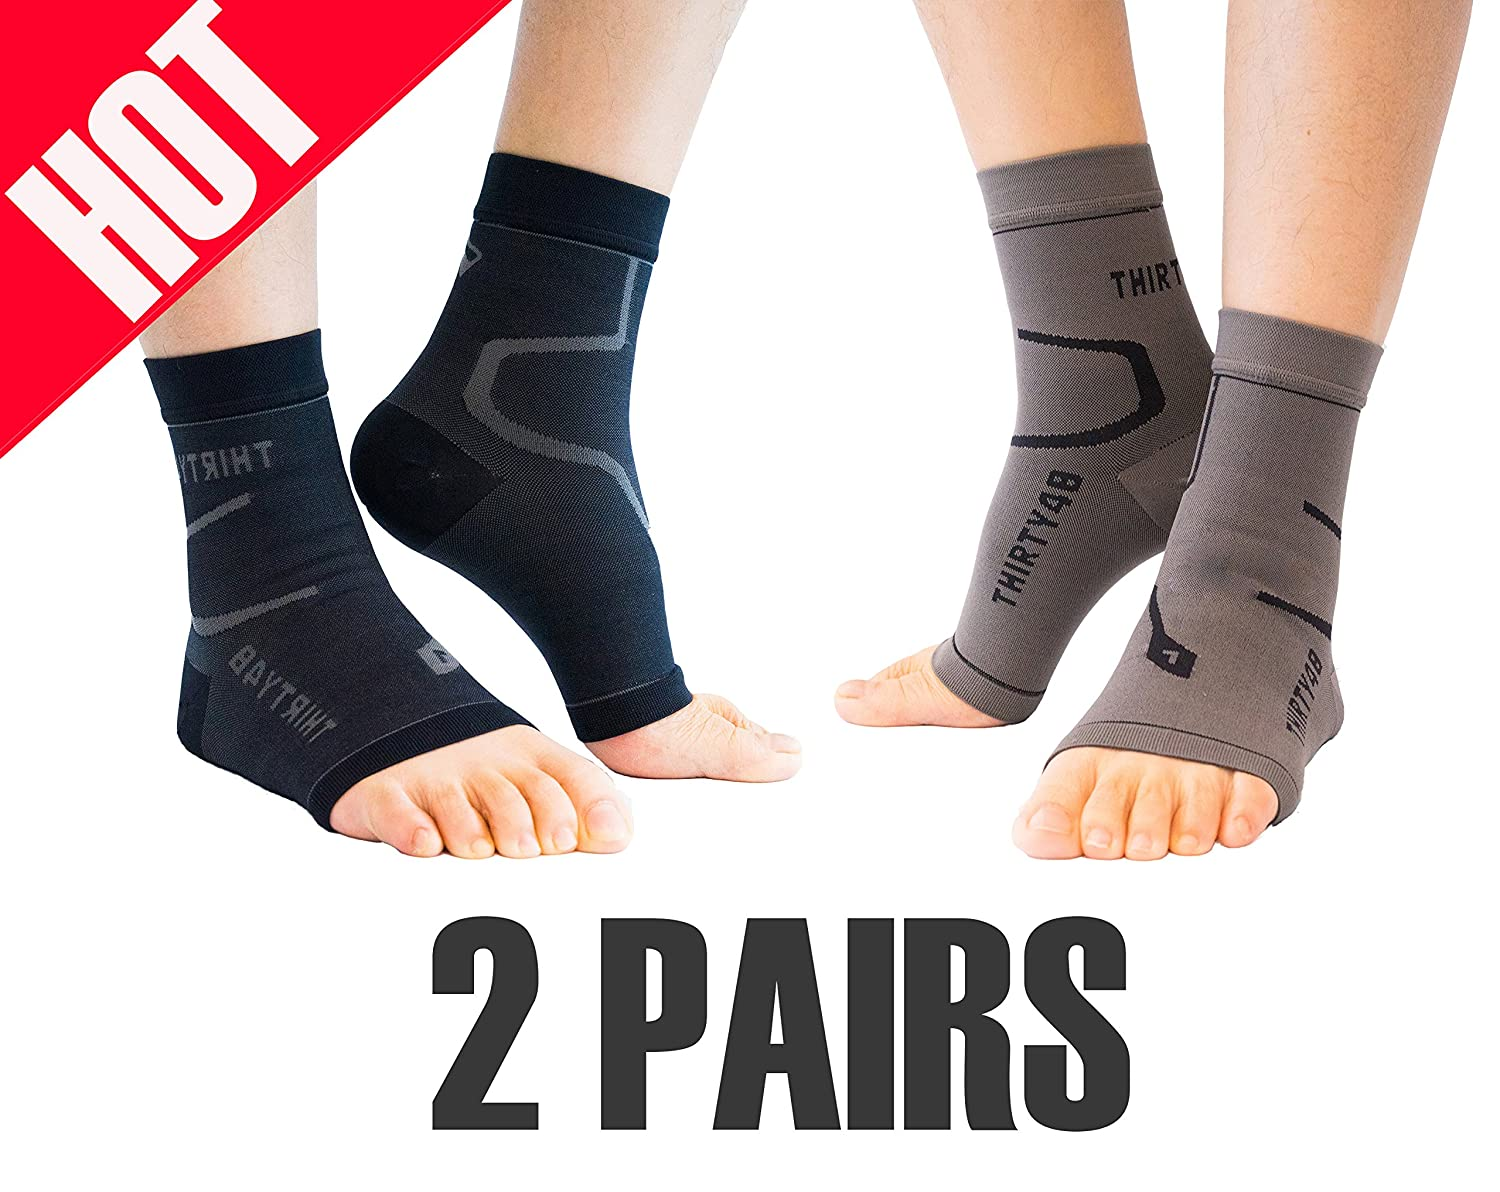 Thirty48 FC4BKGPKG-2PK Socks, 20-30 mmHg Foot Sleeves for Ankle/Heel Support, 2 Pairs, X-Large, Black/Gray